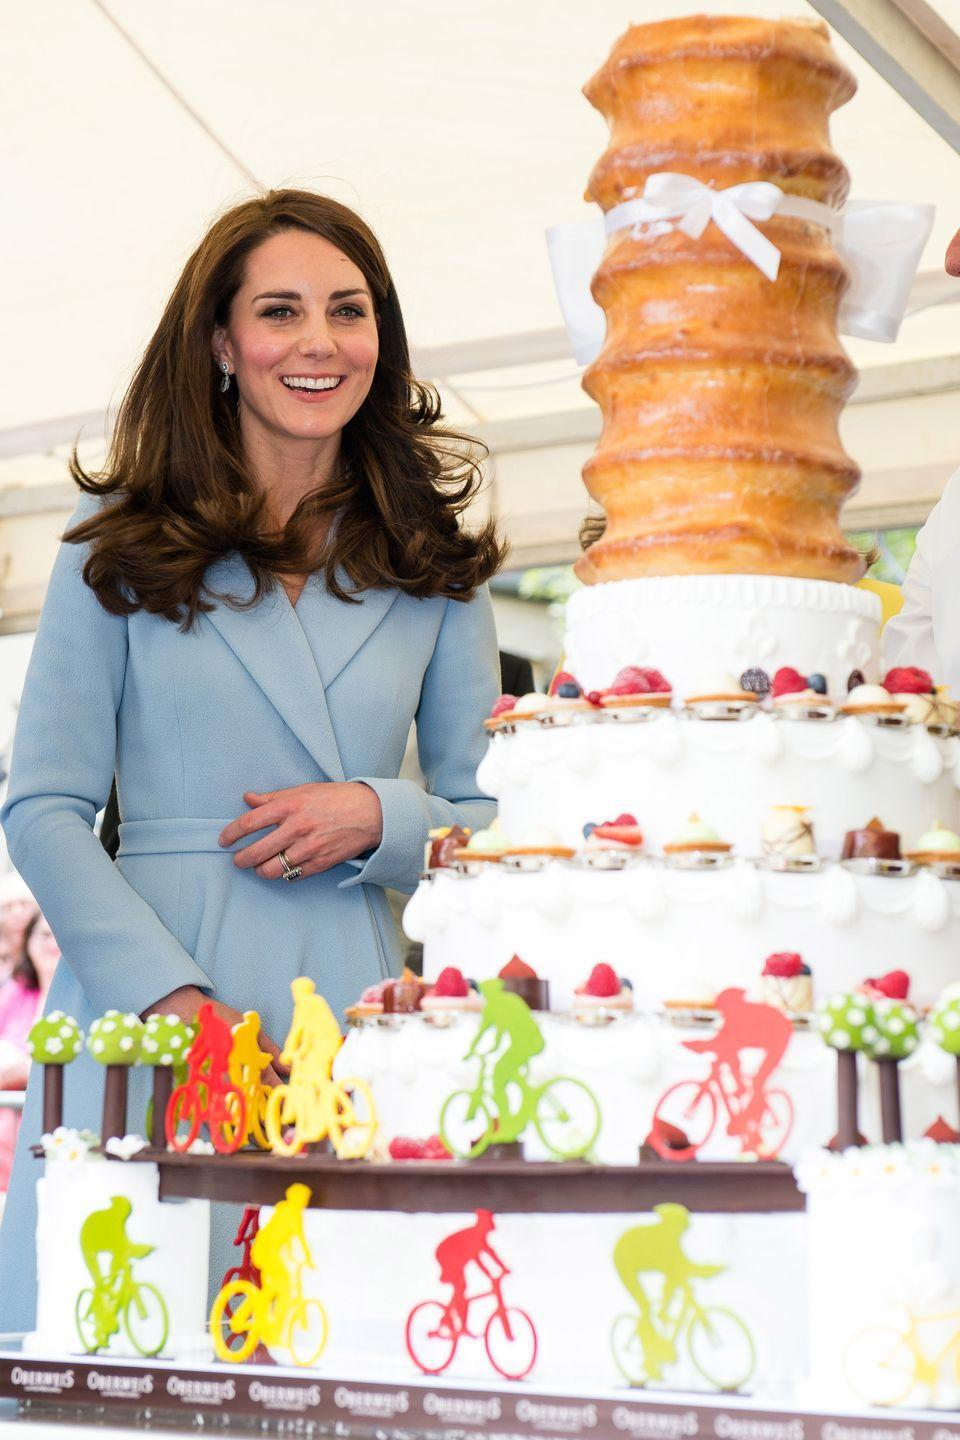 <p>Again, she's really into holiday foods, meaning come time for Christmas feasting, she's all about the cakes and pastries and batches of other sweet stuff that's involved. Yes, Kate! ILY, Kate!!</p>